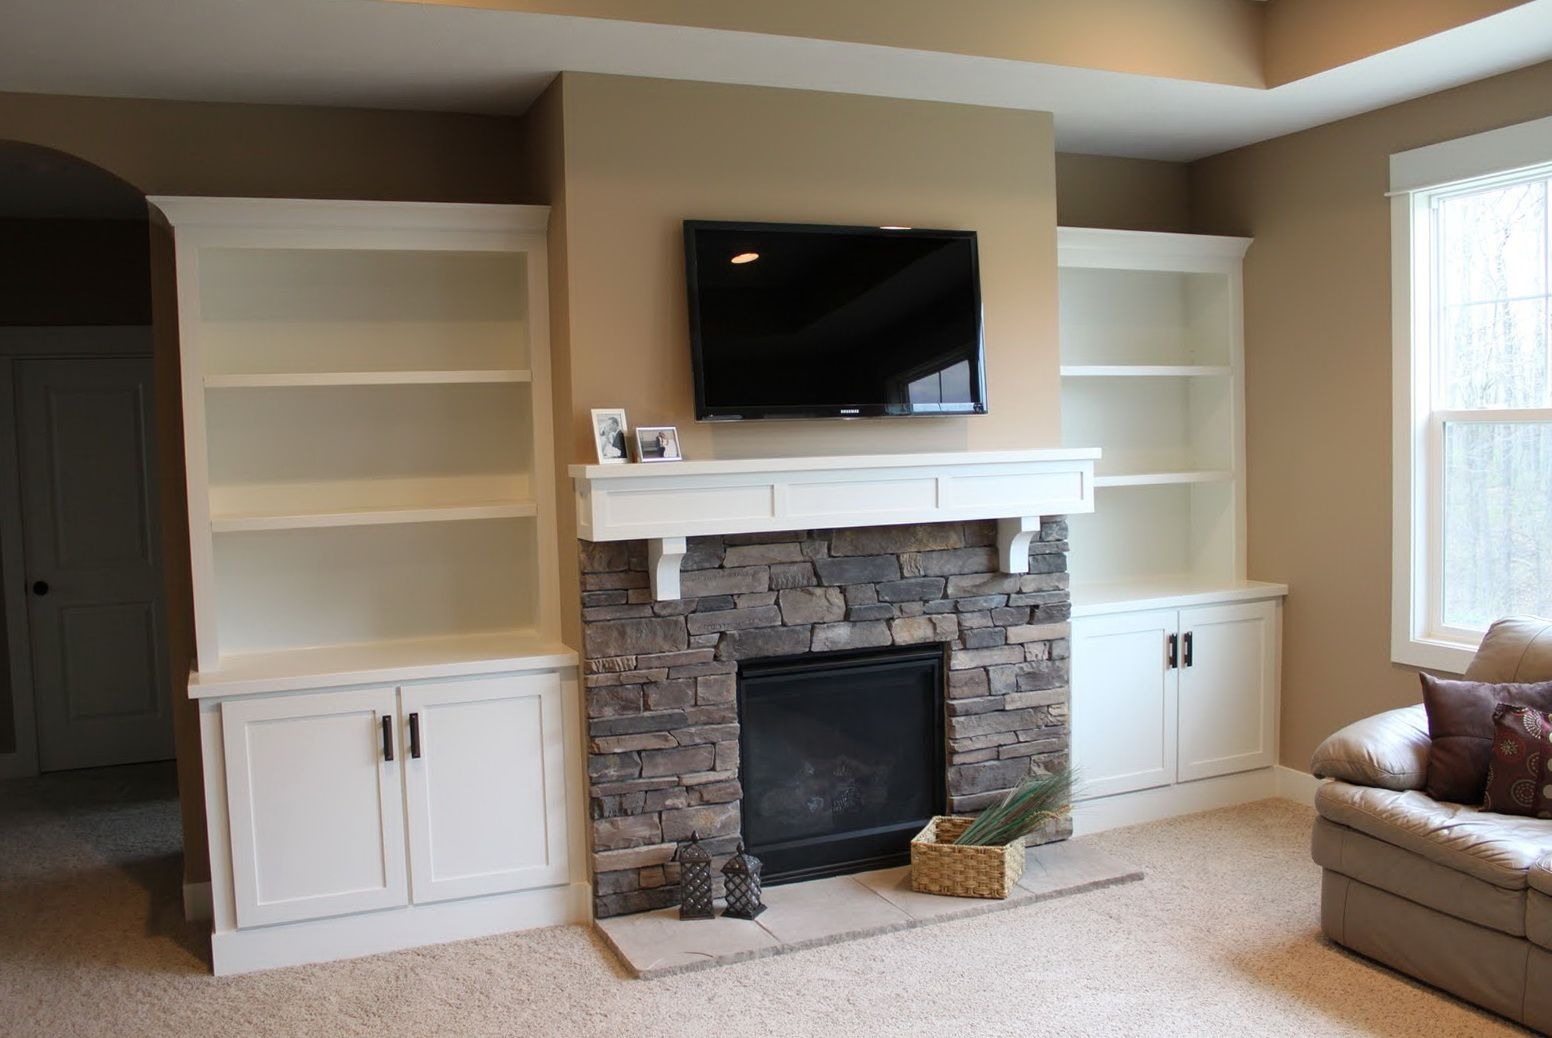 Wall To Wall Built In Entertainment Center With Fireplace